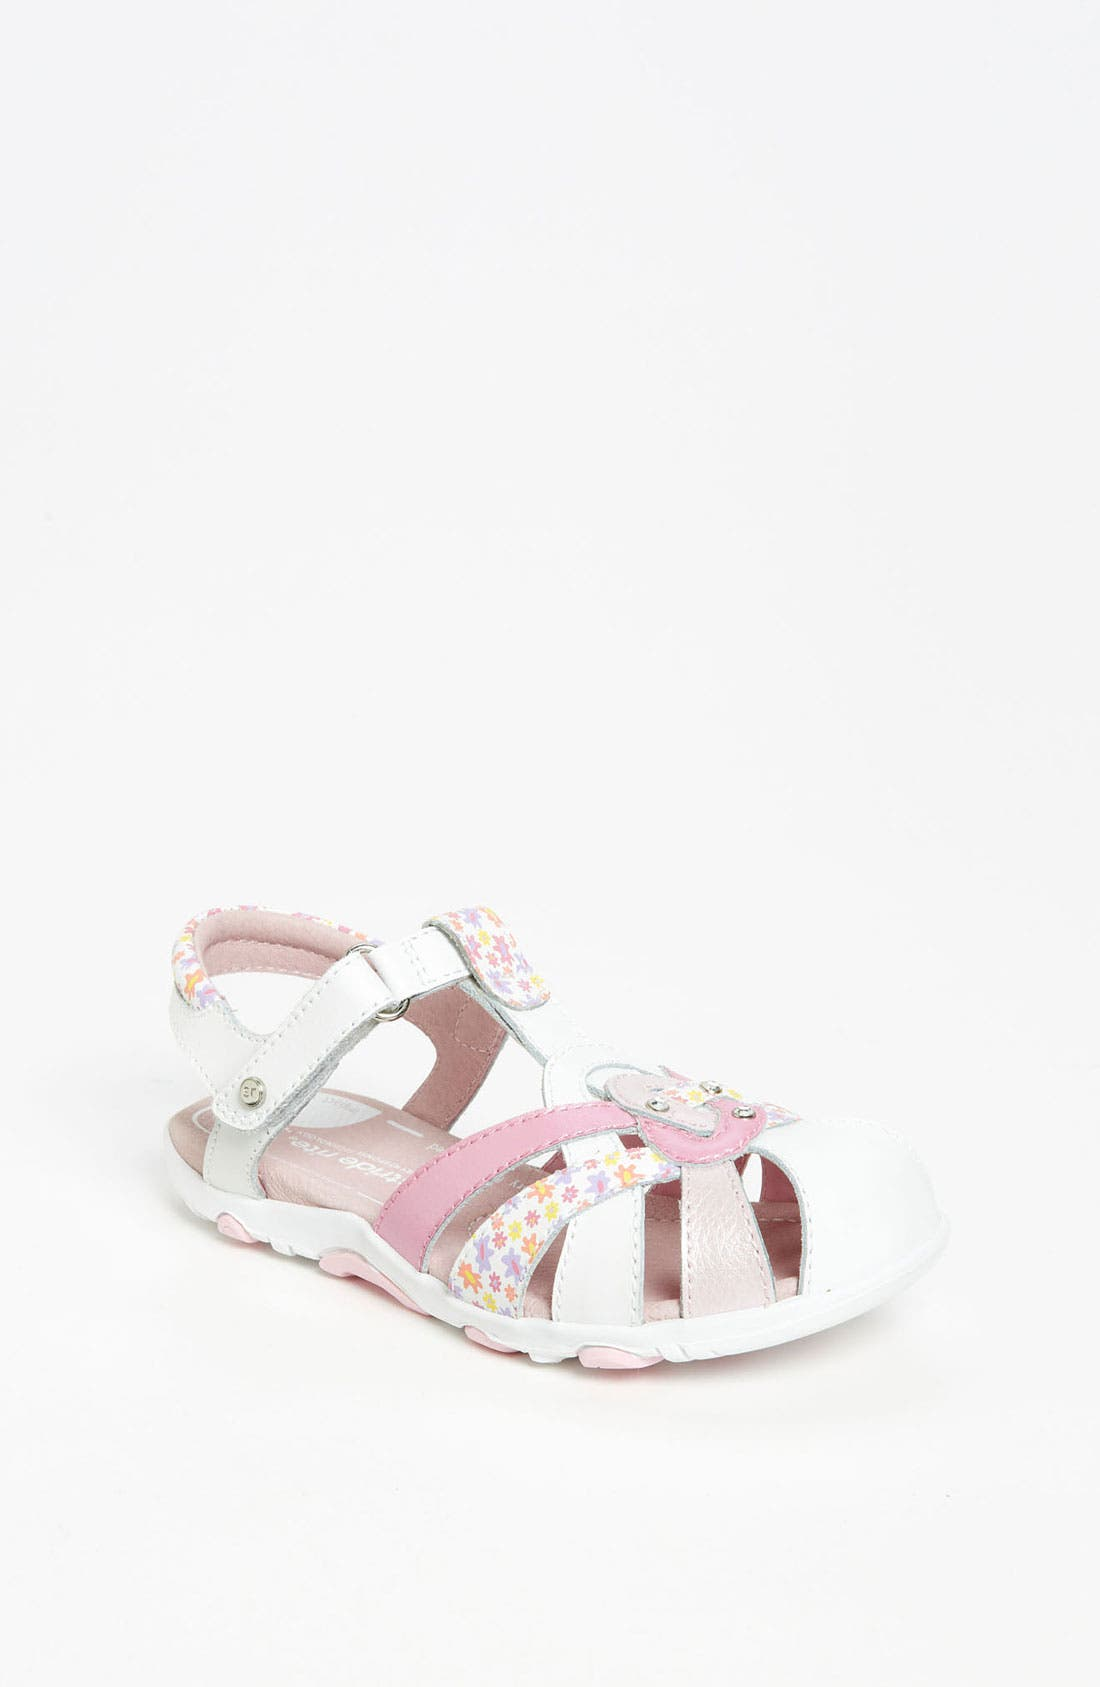 Main Image - Stride Rite 'Maybelle' Sandal (Baby, Walker, Toddler & Little Kid)